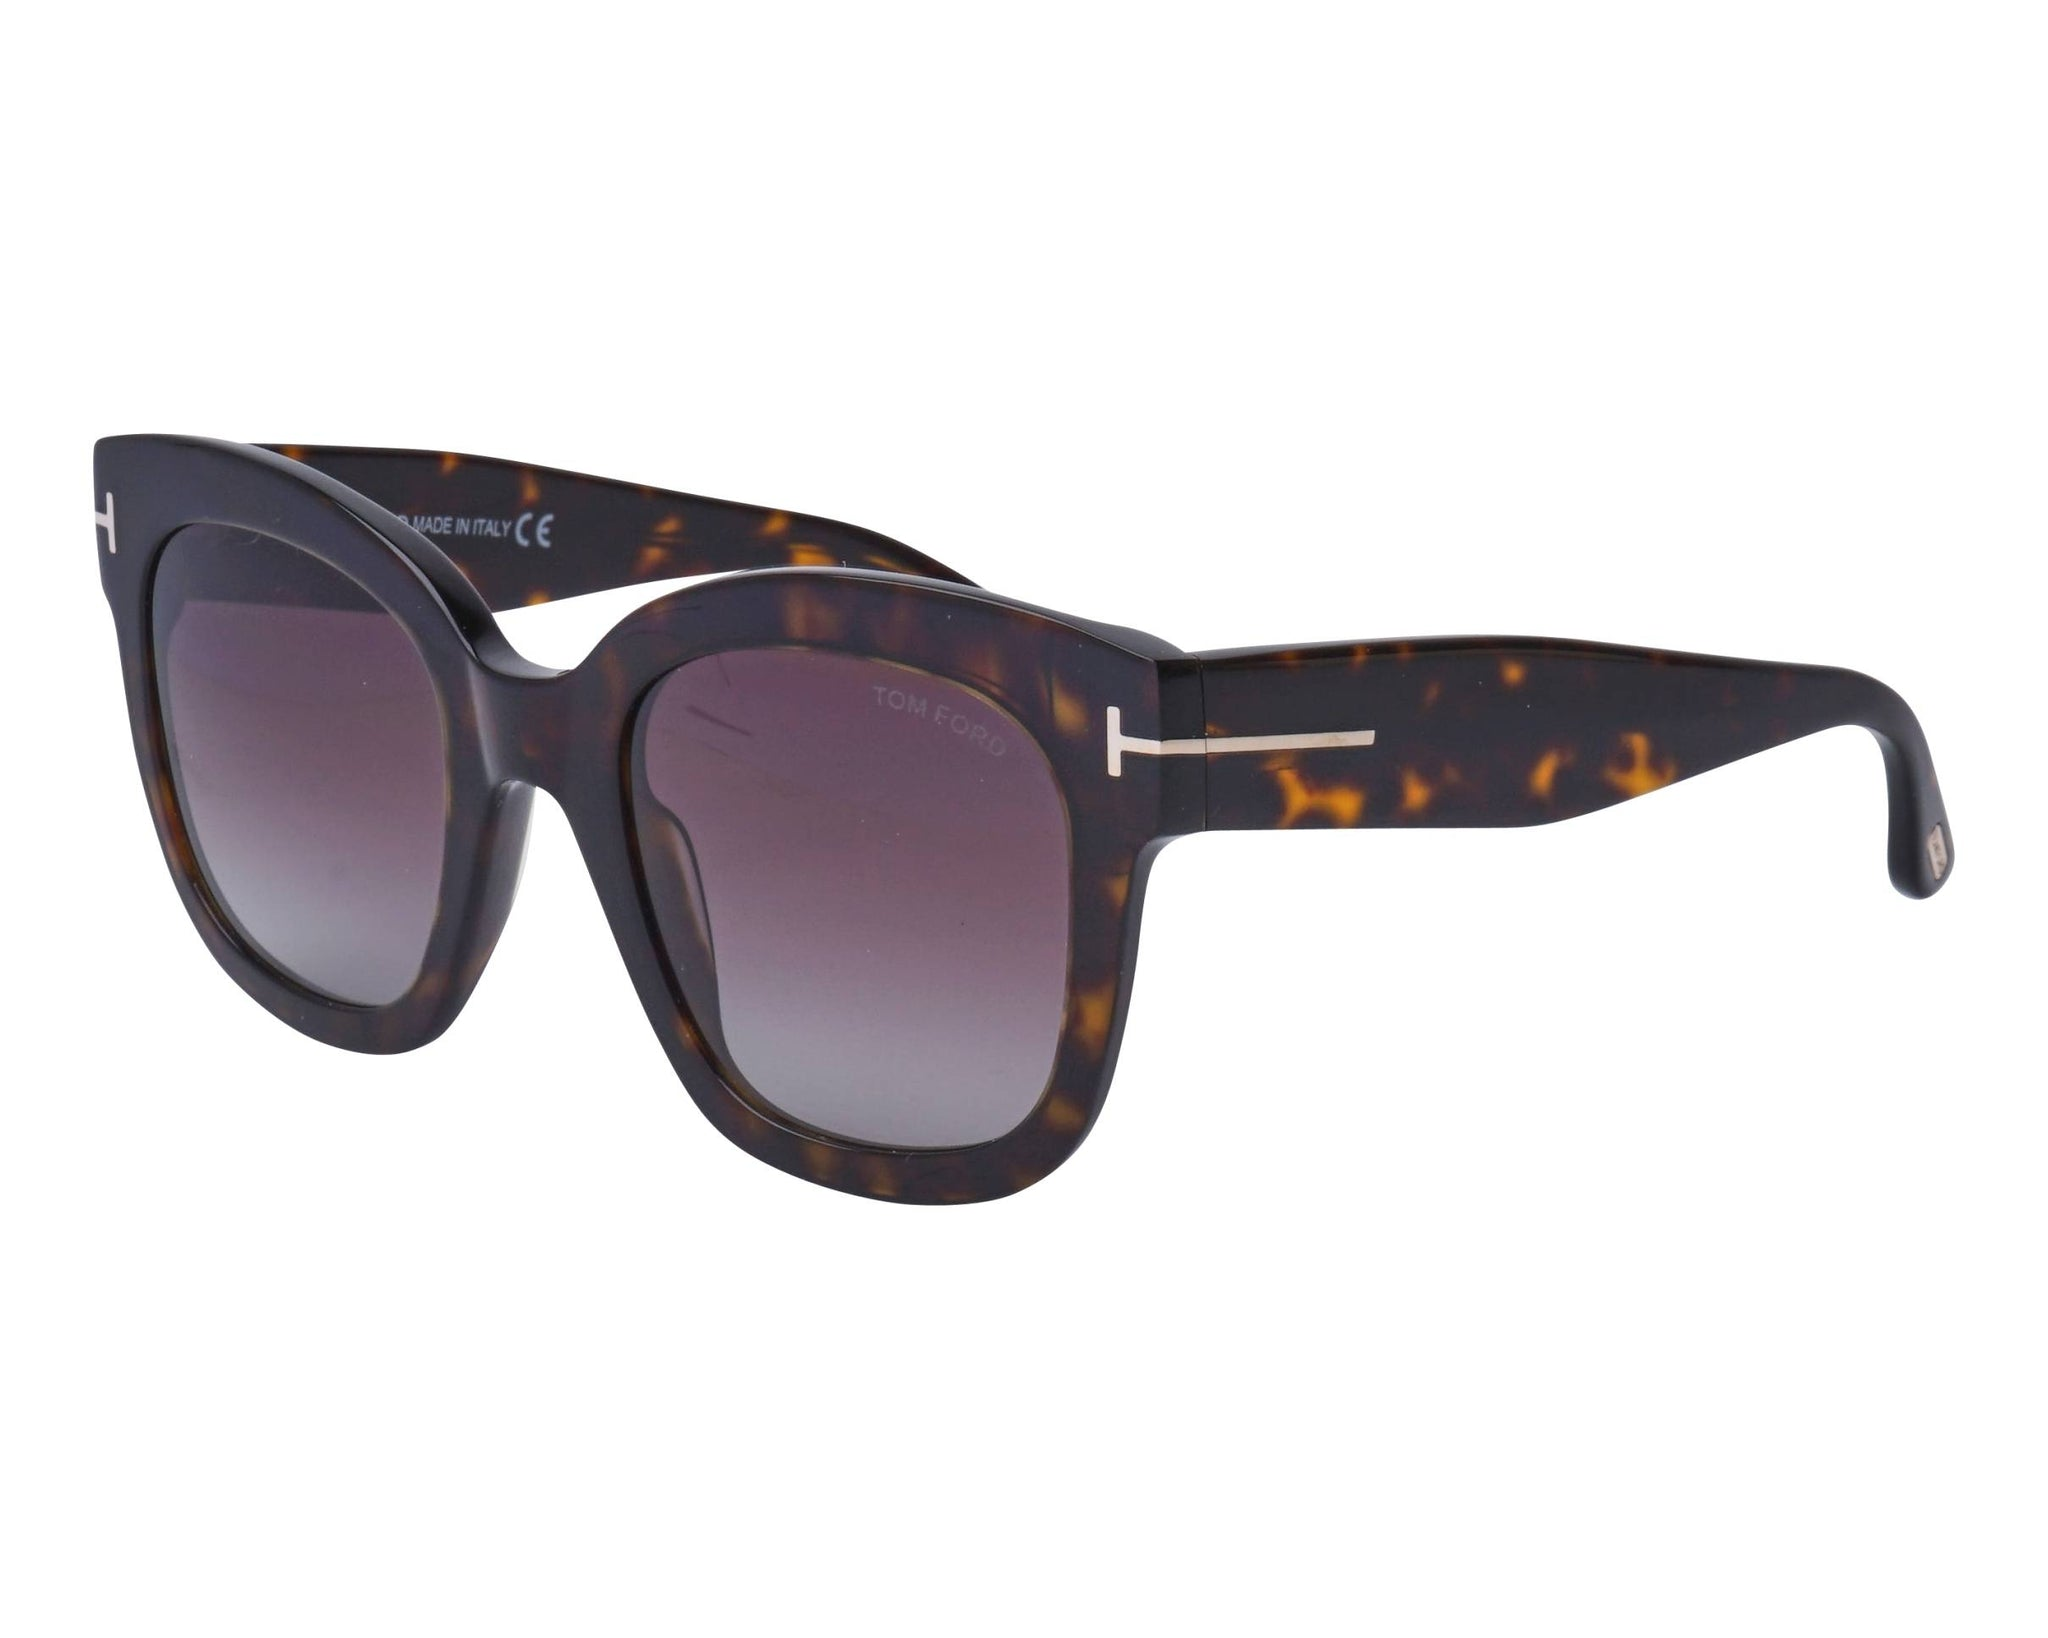 Tom Ford Beatrix 613 Sunglasses